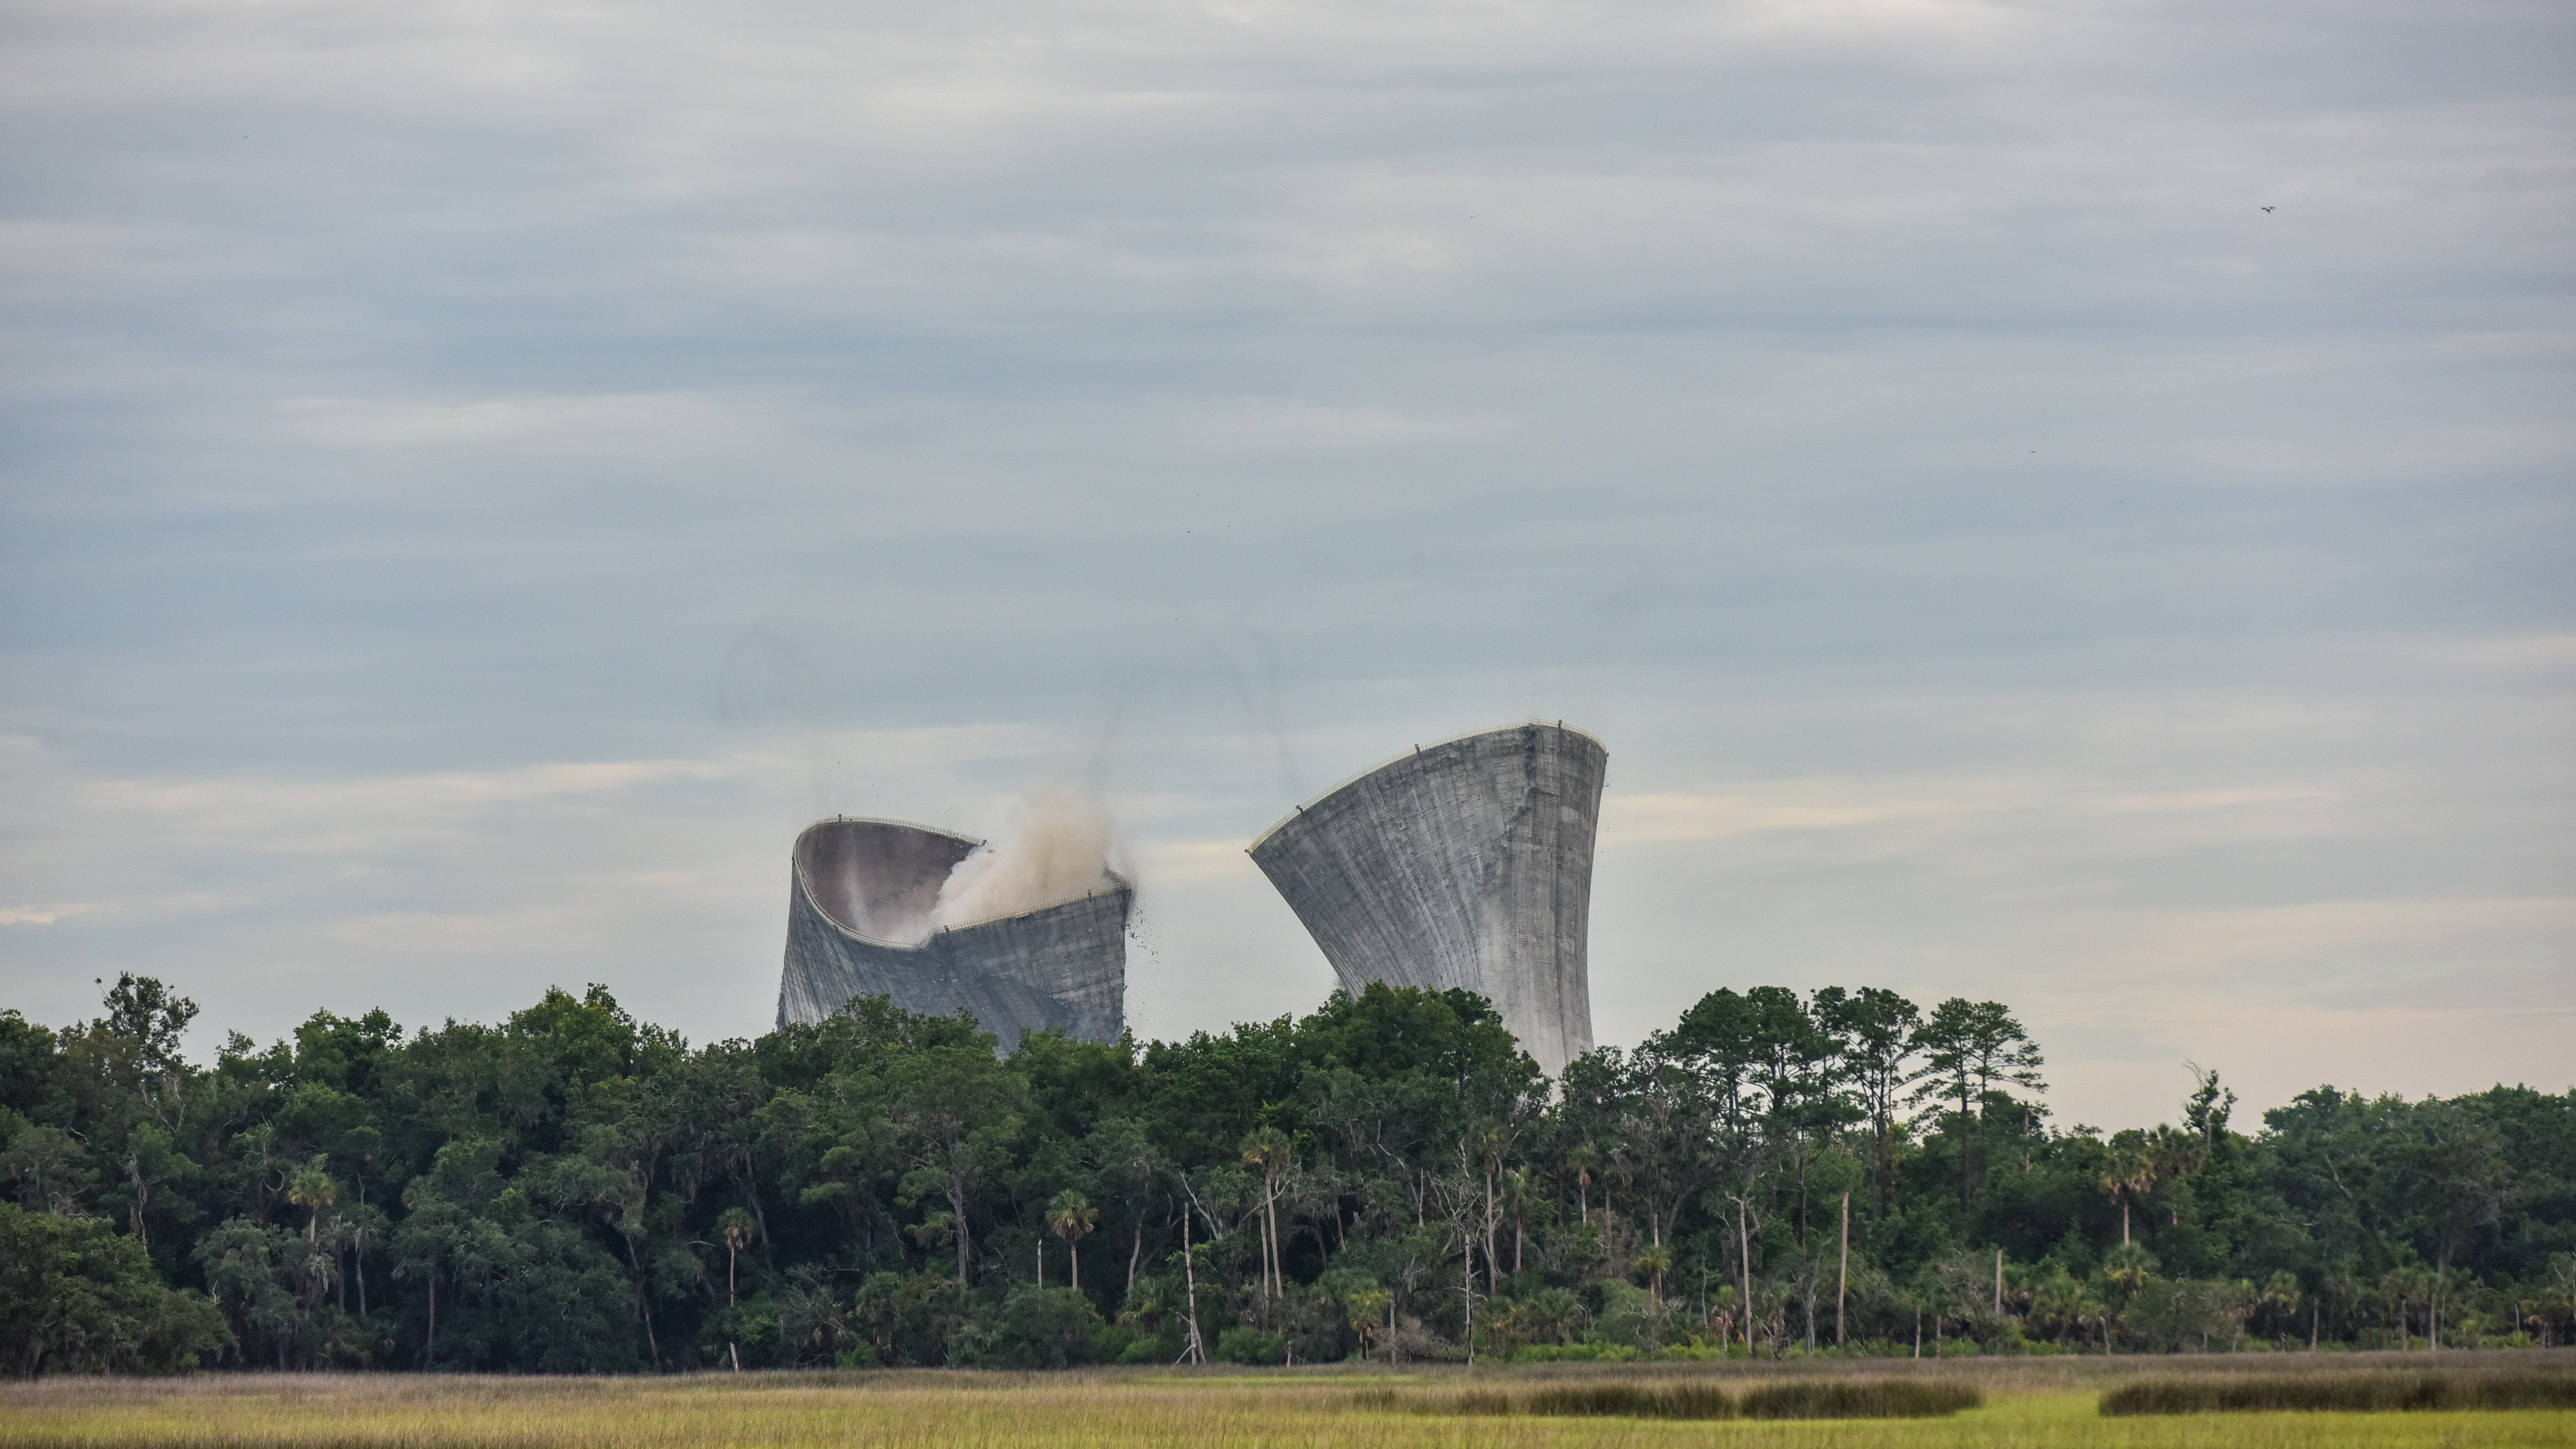 More than 1,500 pounds of dynamite brought down the cooling towers at the St. Johns River Power Park on June 16, 2018. The spectacle attracted crowds who lined nearby roads.